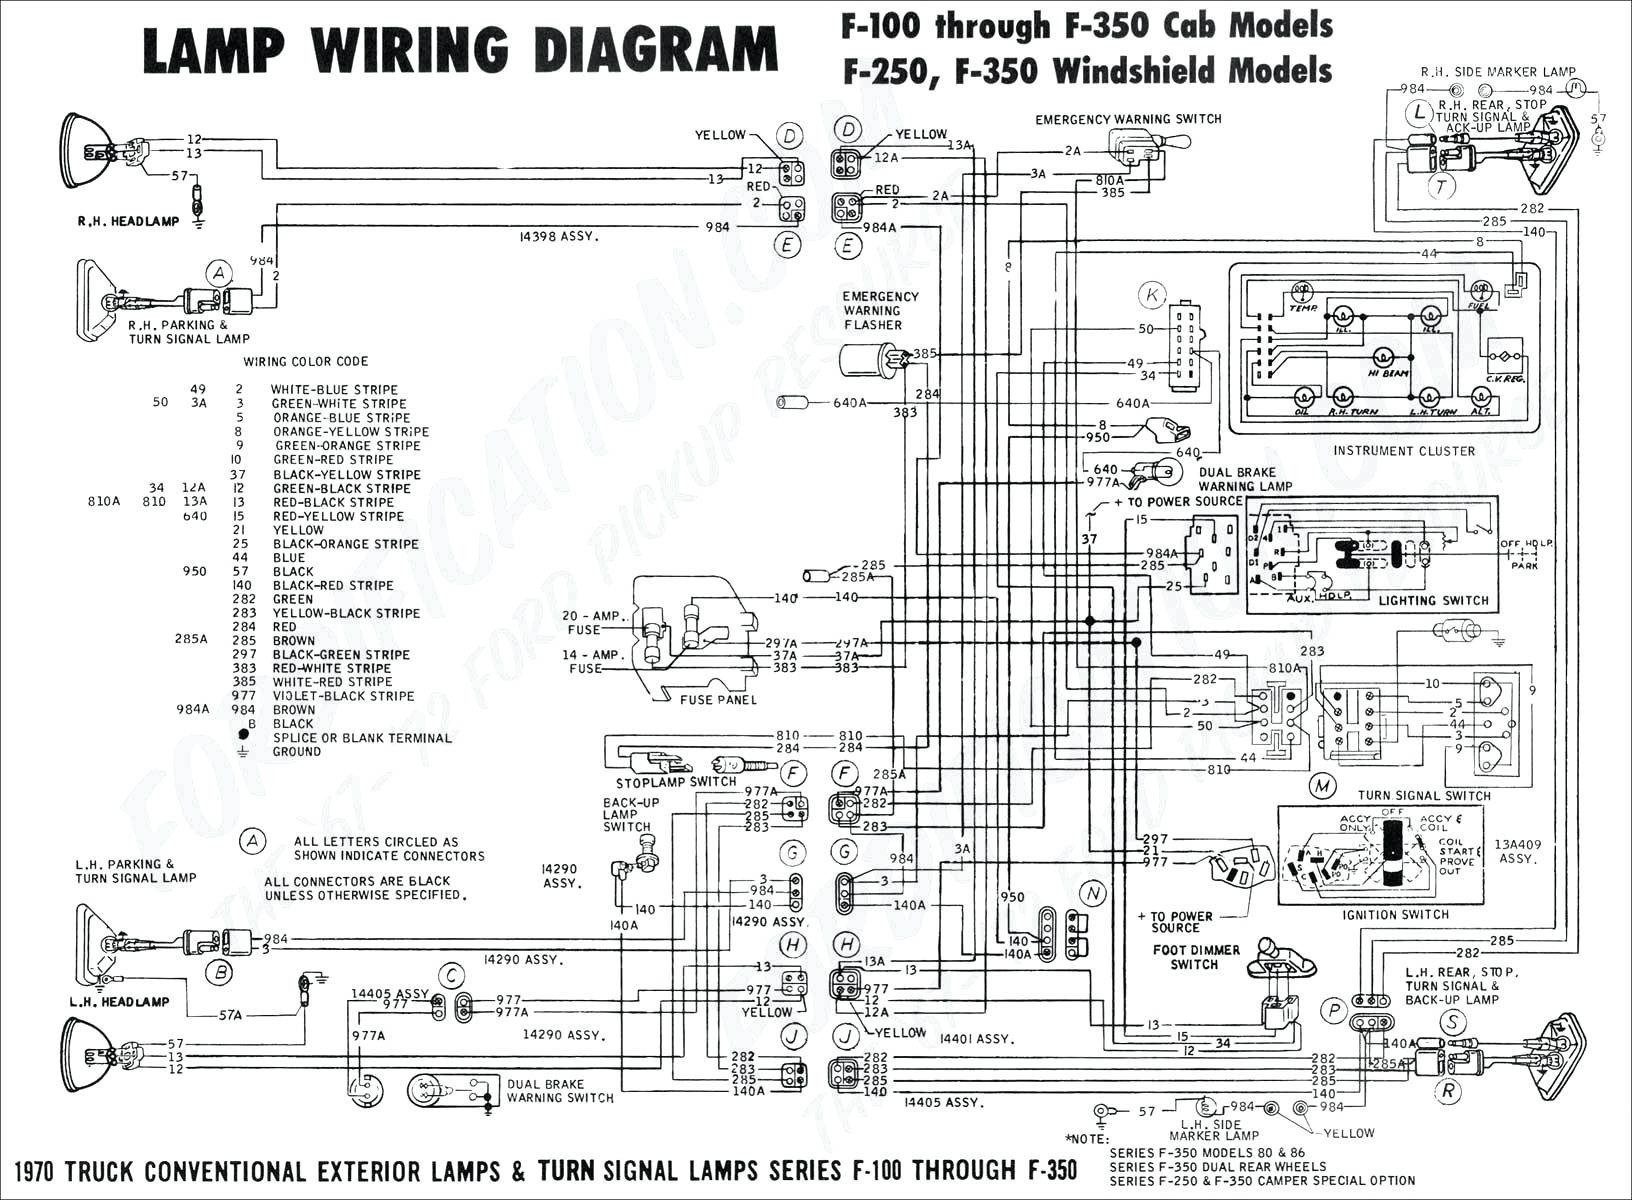 Ford Starter solenoid Wiring Diagram ford Starter solenoid Wiring Diagram Fresh Best ford F150 Starter Of Ford Starter solenoid Wiring Diagram